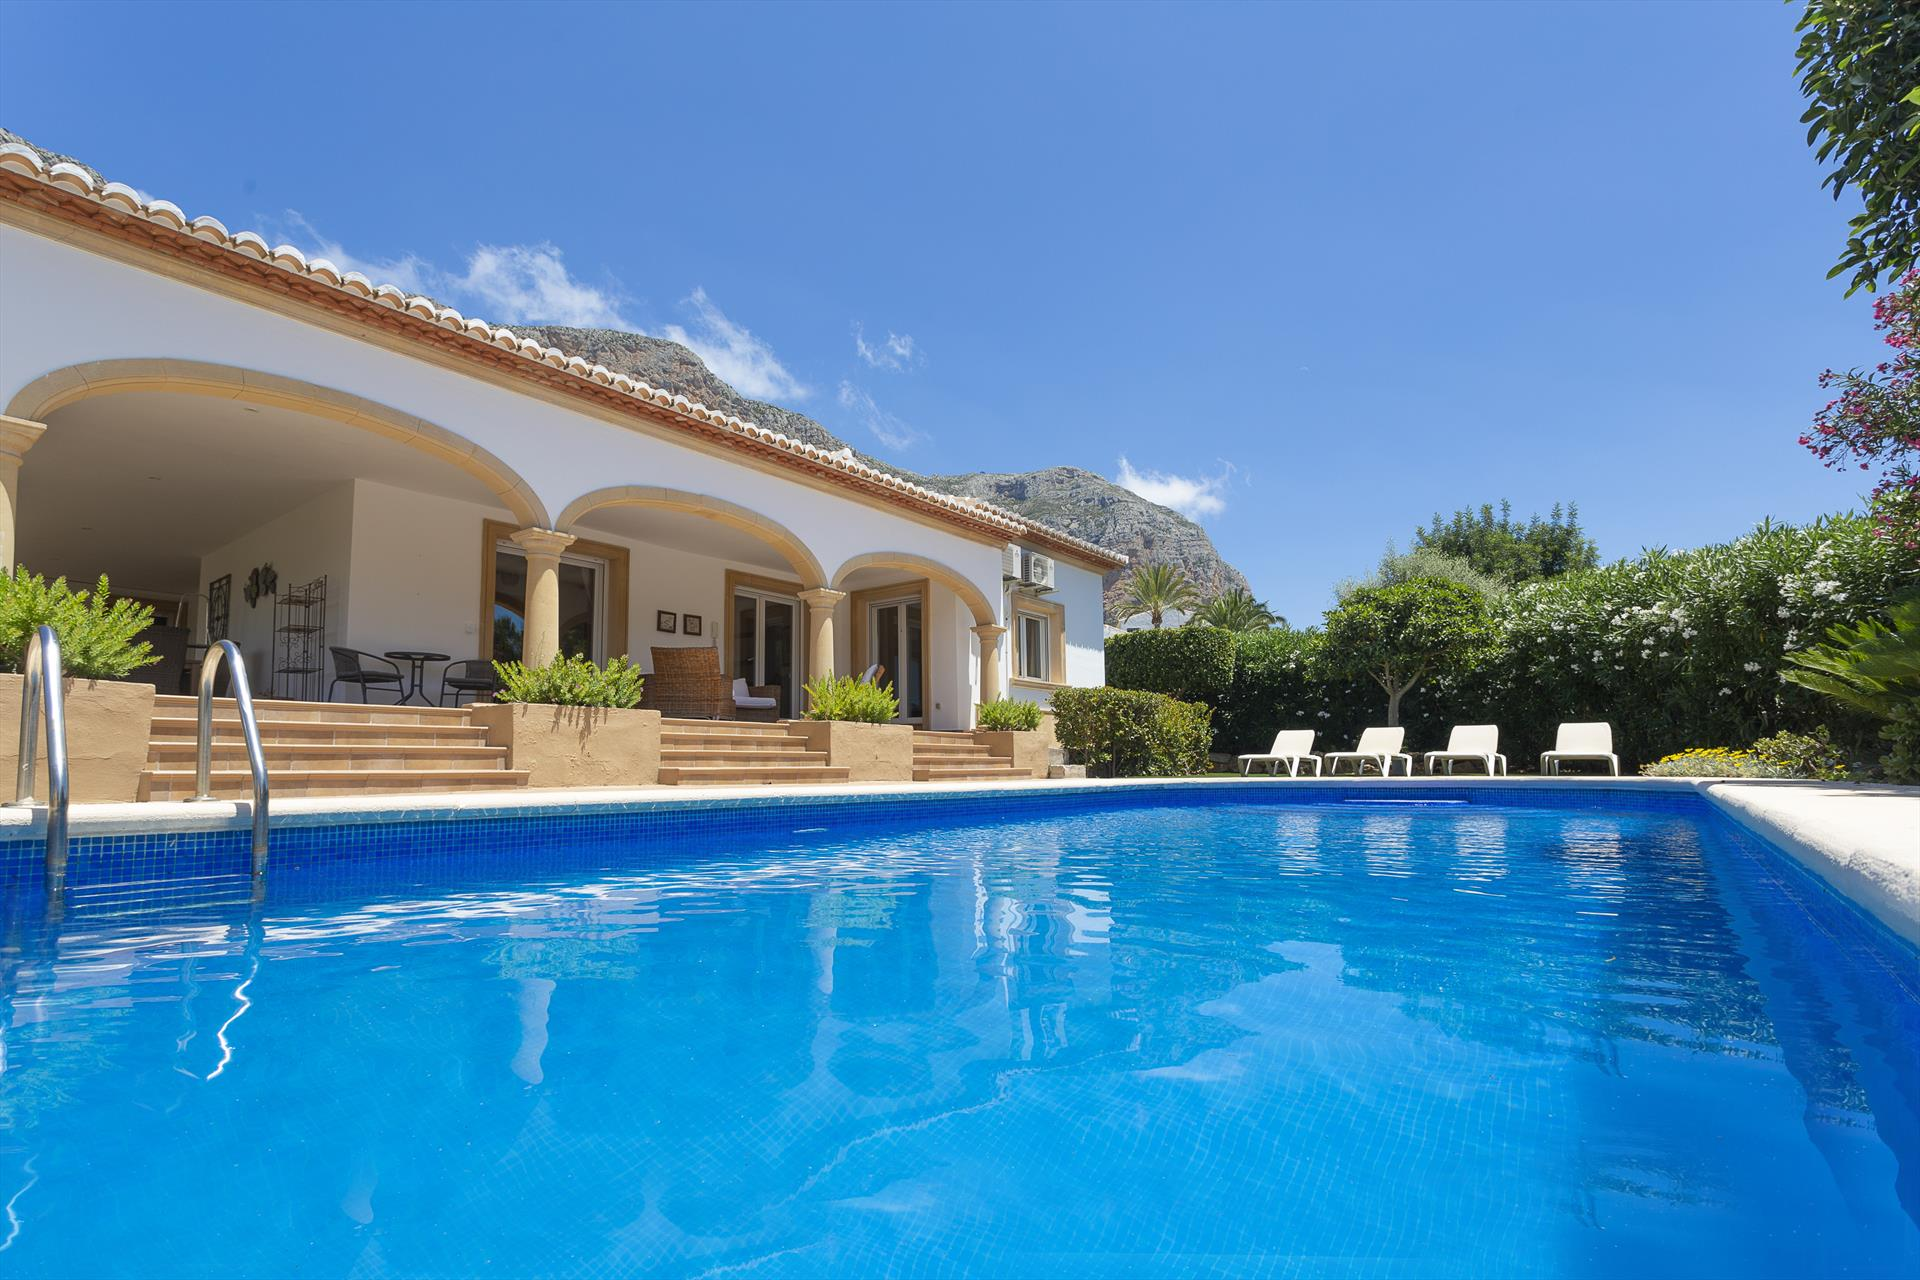 Casa Dory 4p,Lovely holiday villa n Javea with private pool and beautiful views of the Montgo mountain and the valley.This beautiful.....